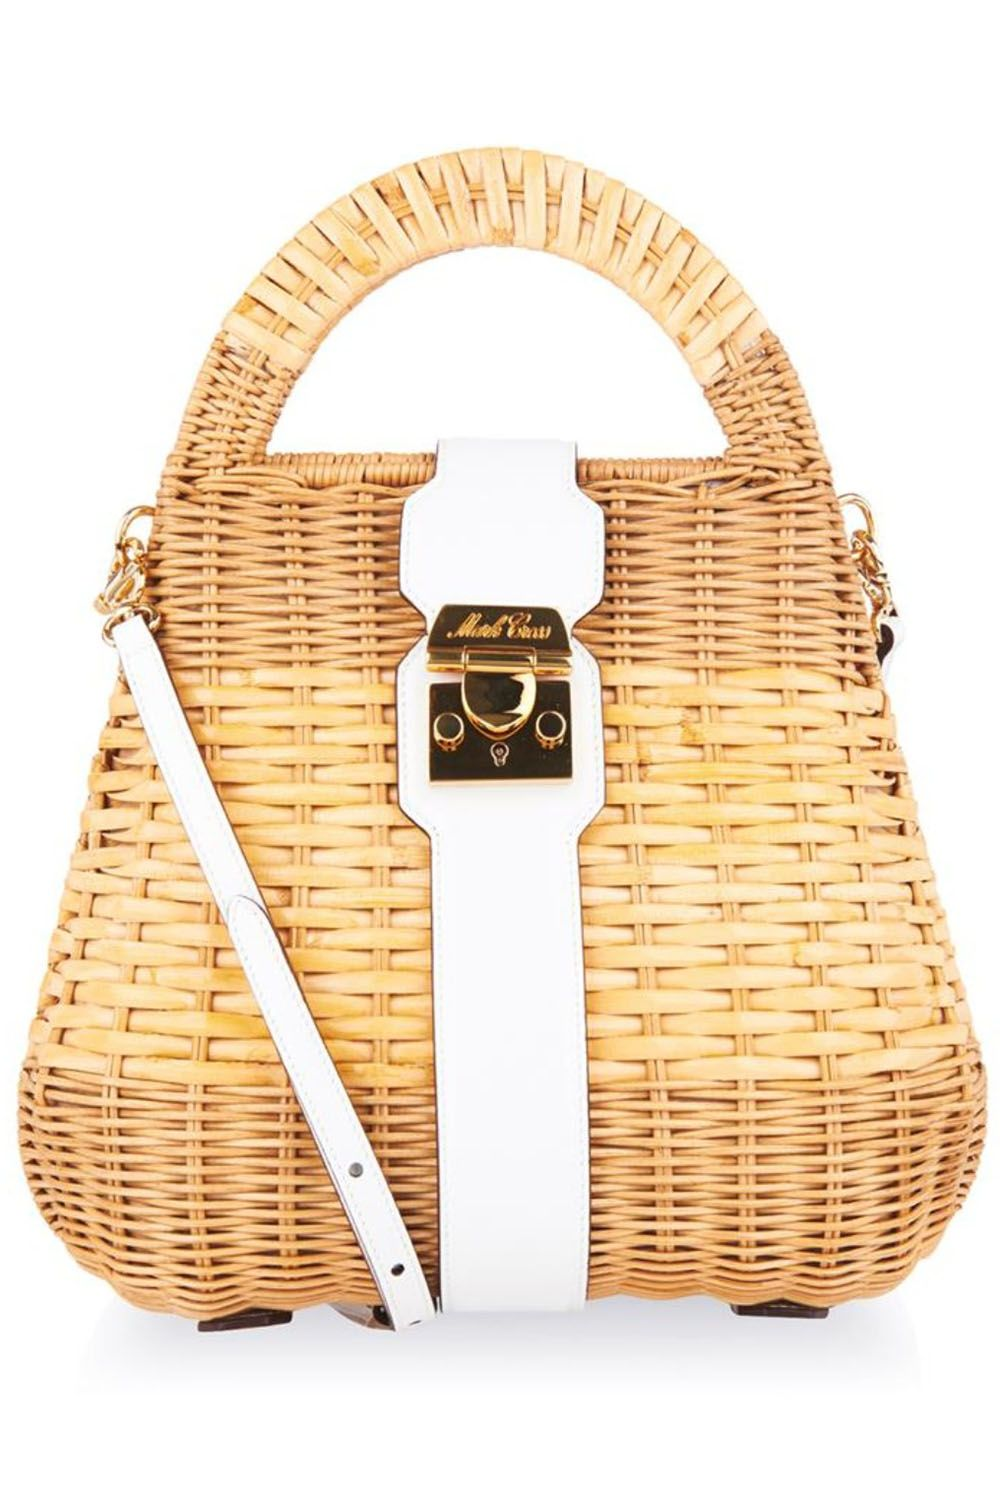 "<em>Mark Cross satchel bag, $1,854, <a target=""_blank"" href=""http://www.matchesfashion.com/us/products/Mark-Cross-Manray-small-rattan-satchel-bag-1012118"">matchesfashion.com</a>.</em>"